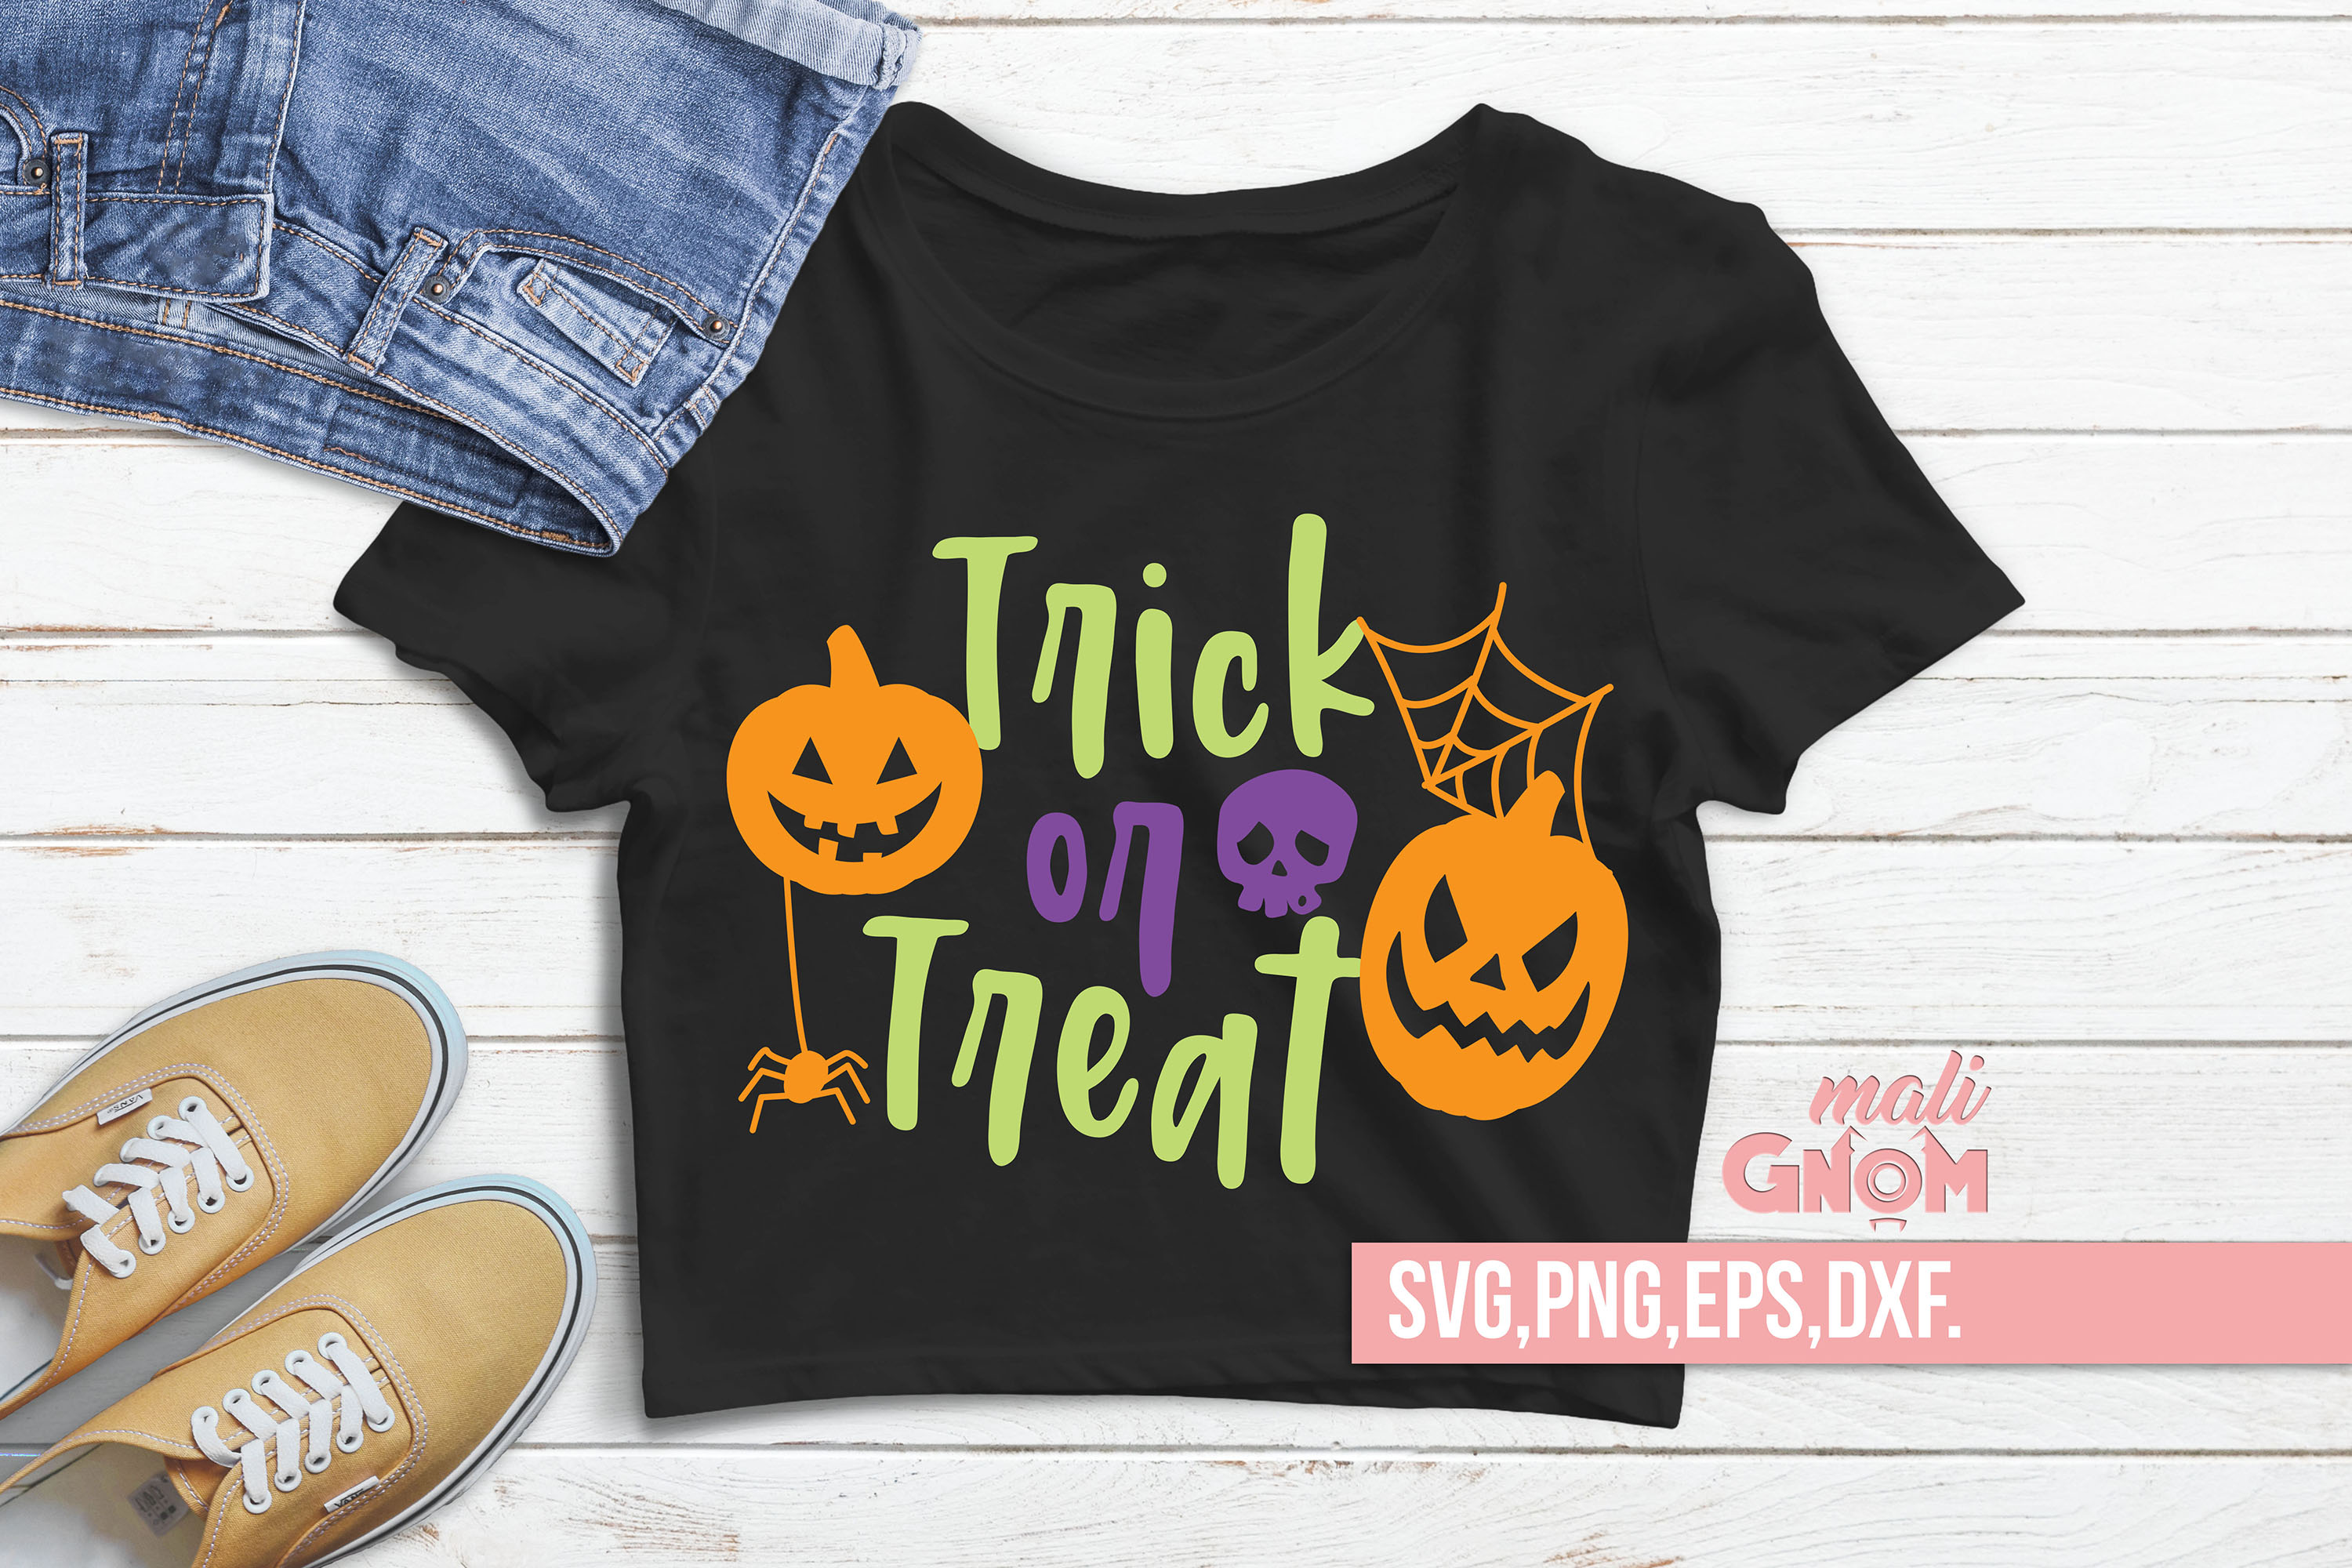 Trick or Treat SVG, Halloween SVG file, Trick or Treat Bag S example image 2